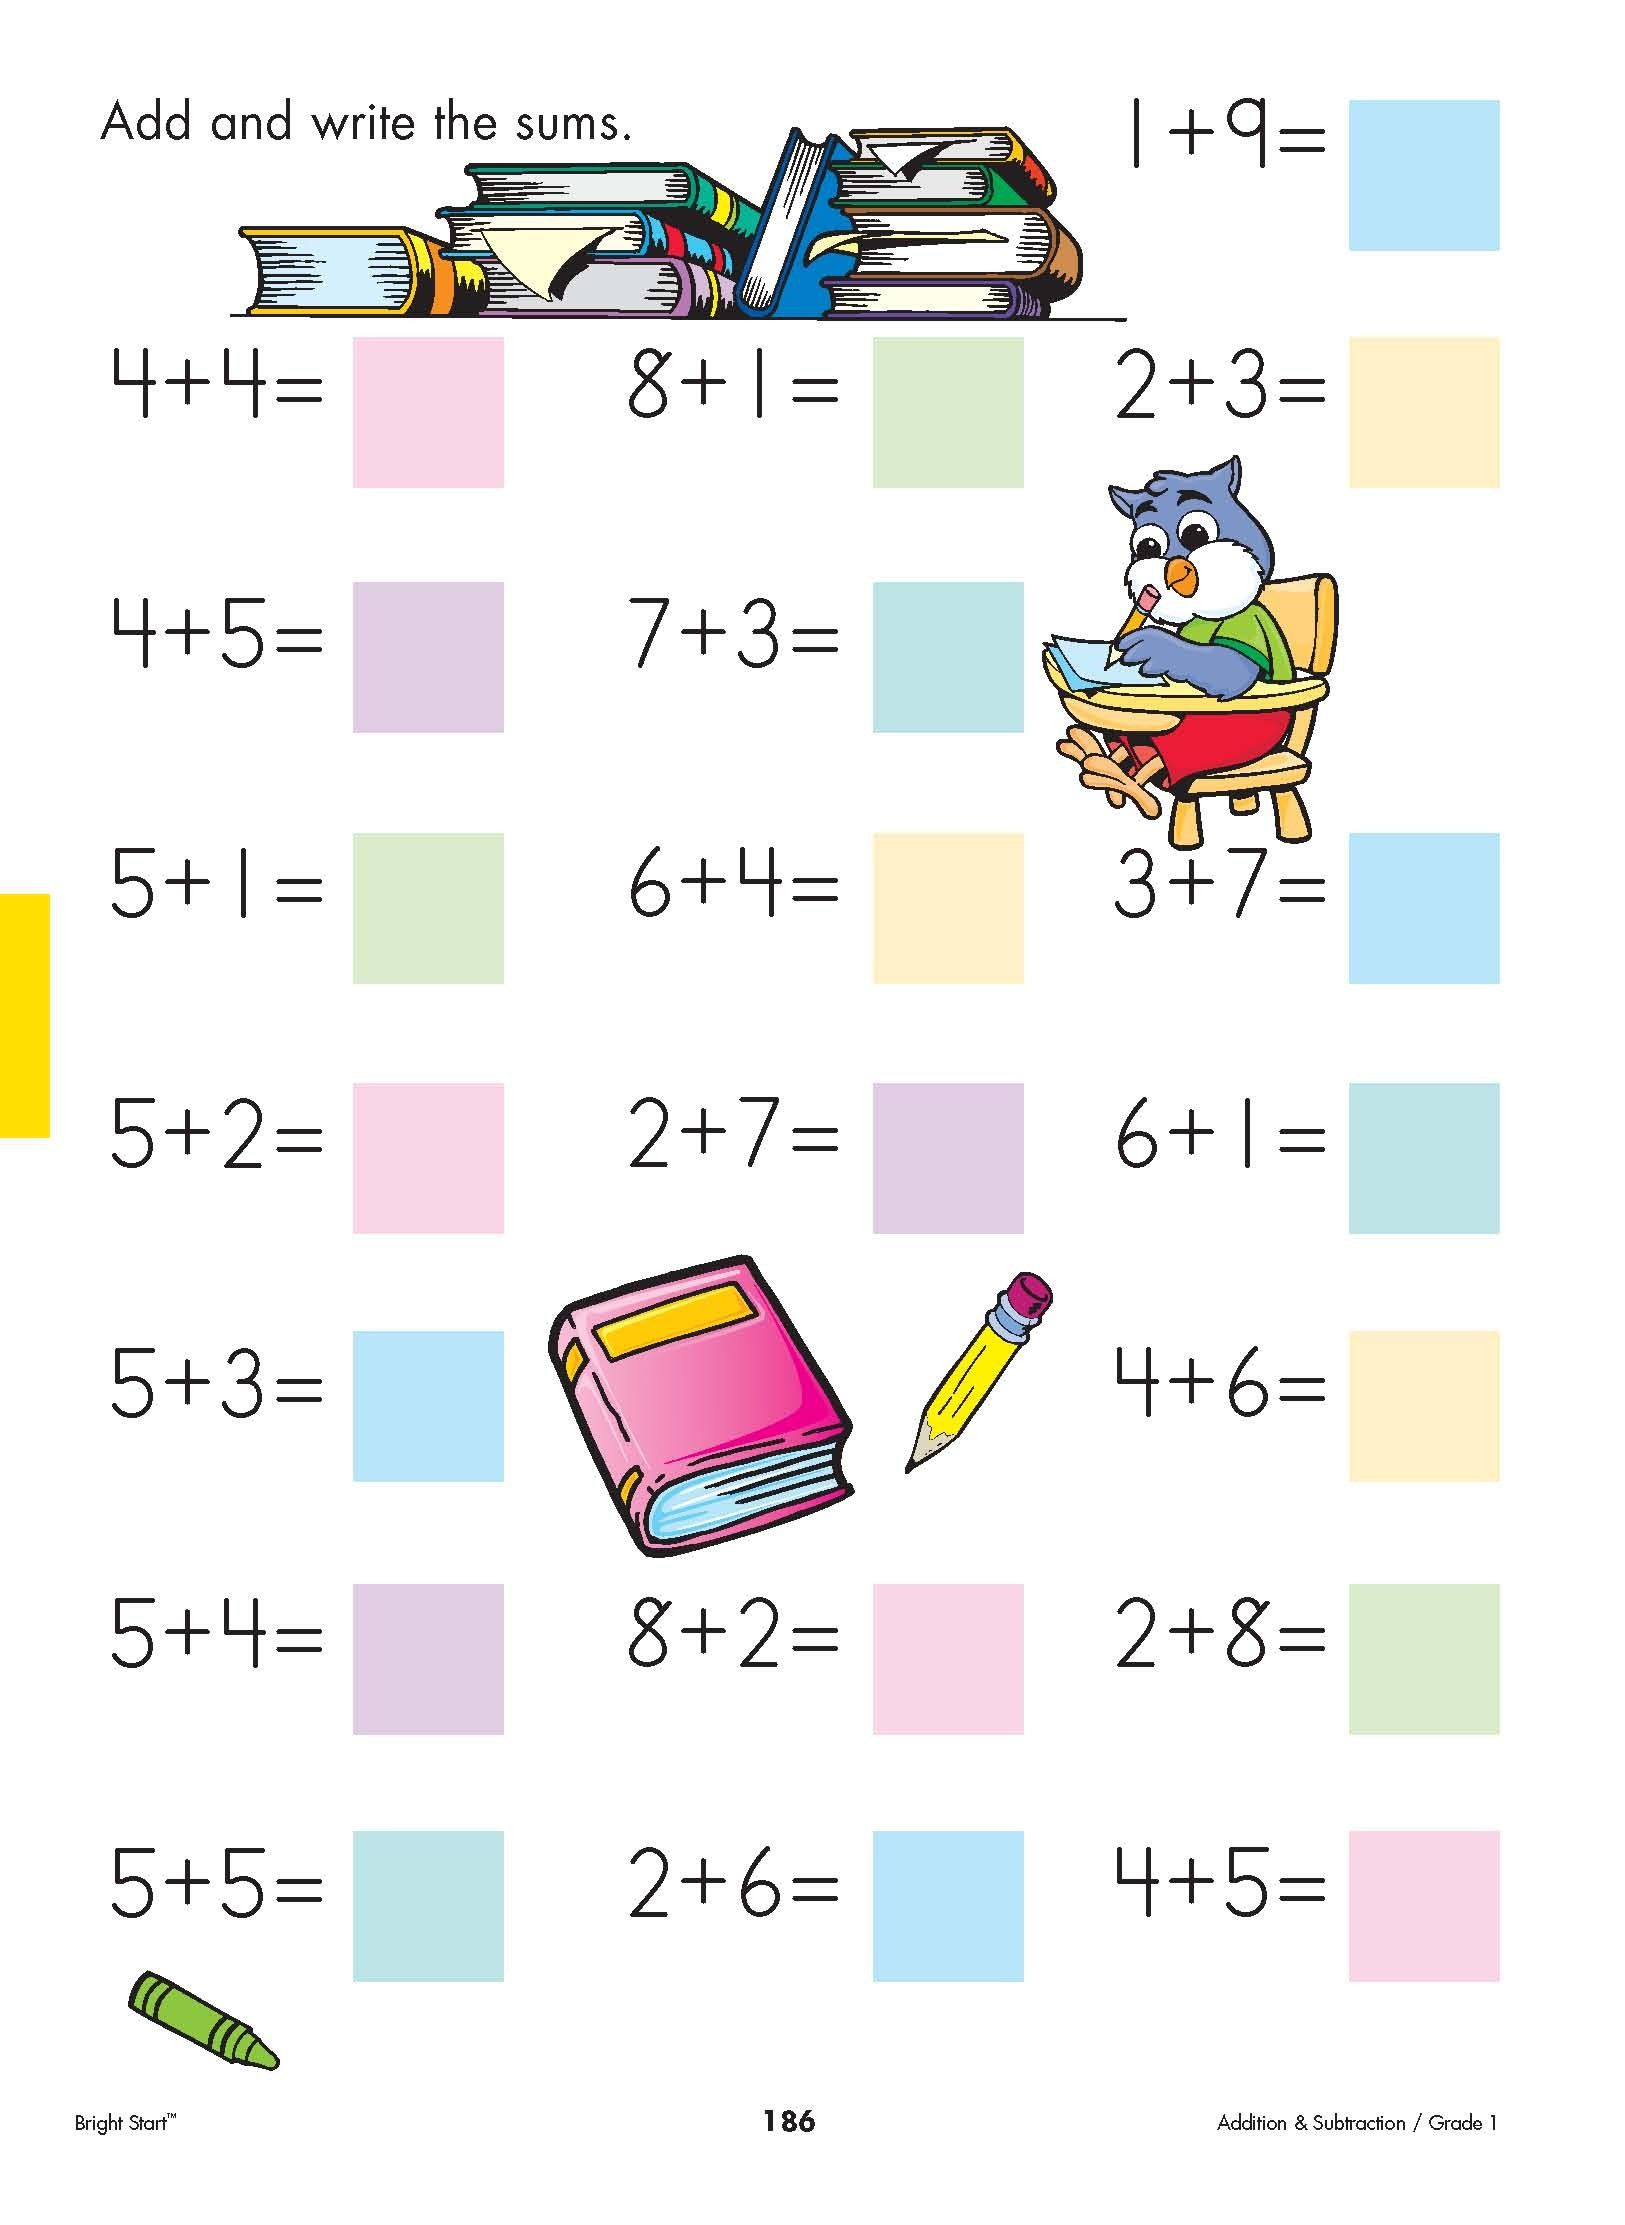 Your First Grader Will Have So Much Fun Doing Addition And